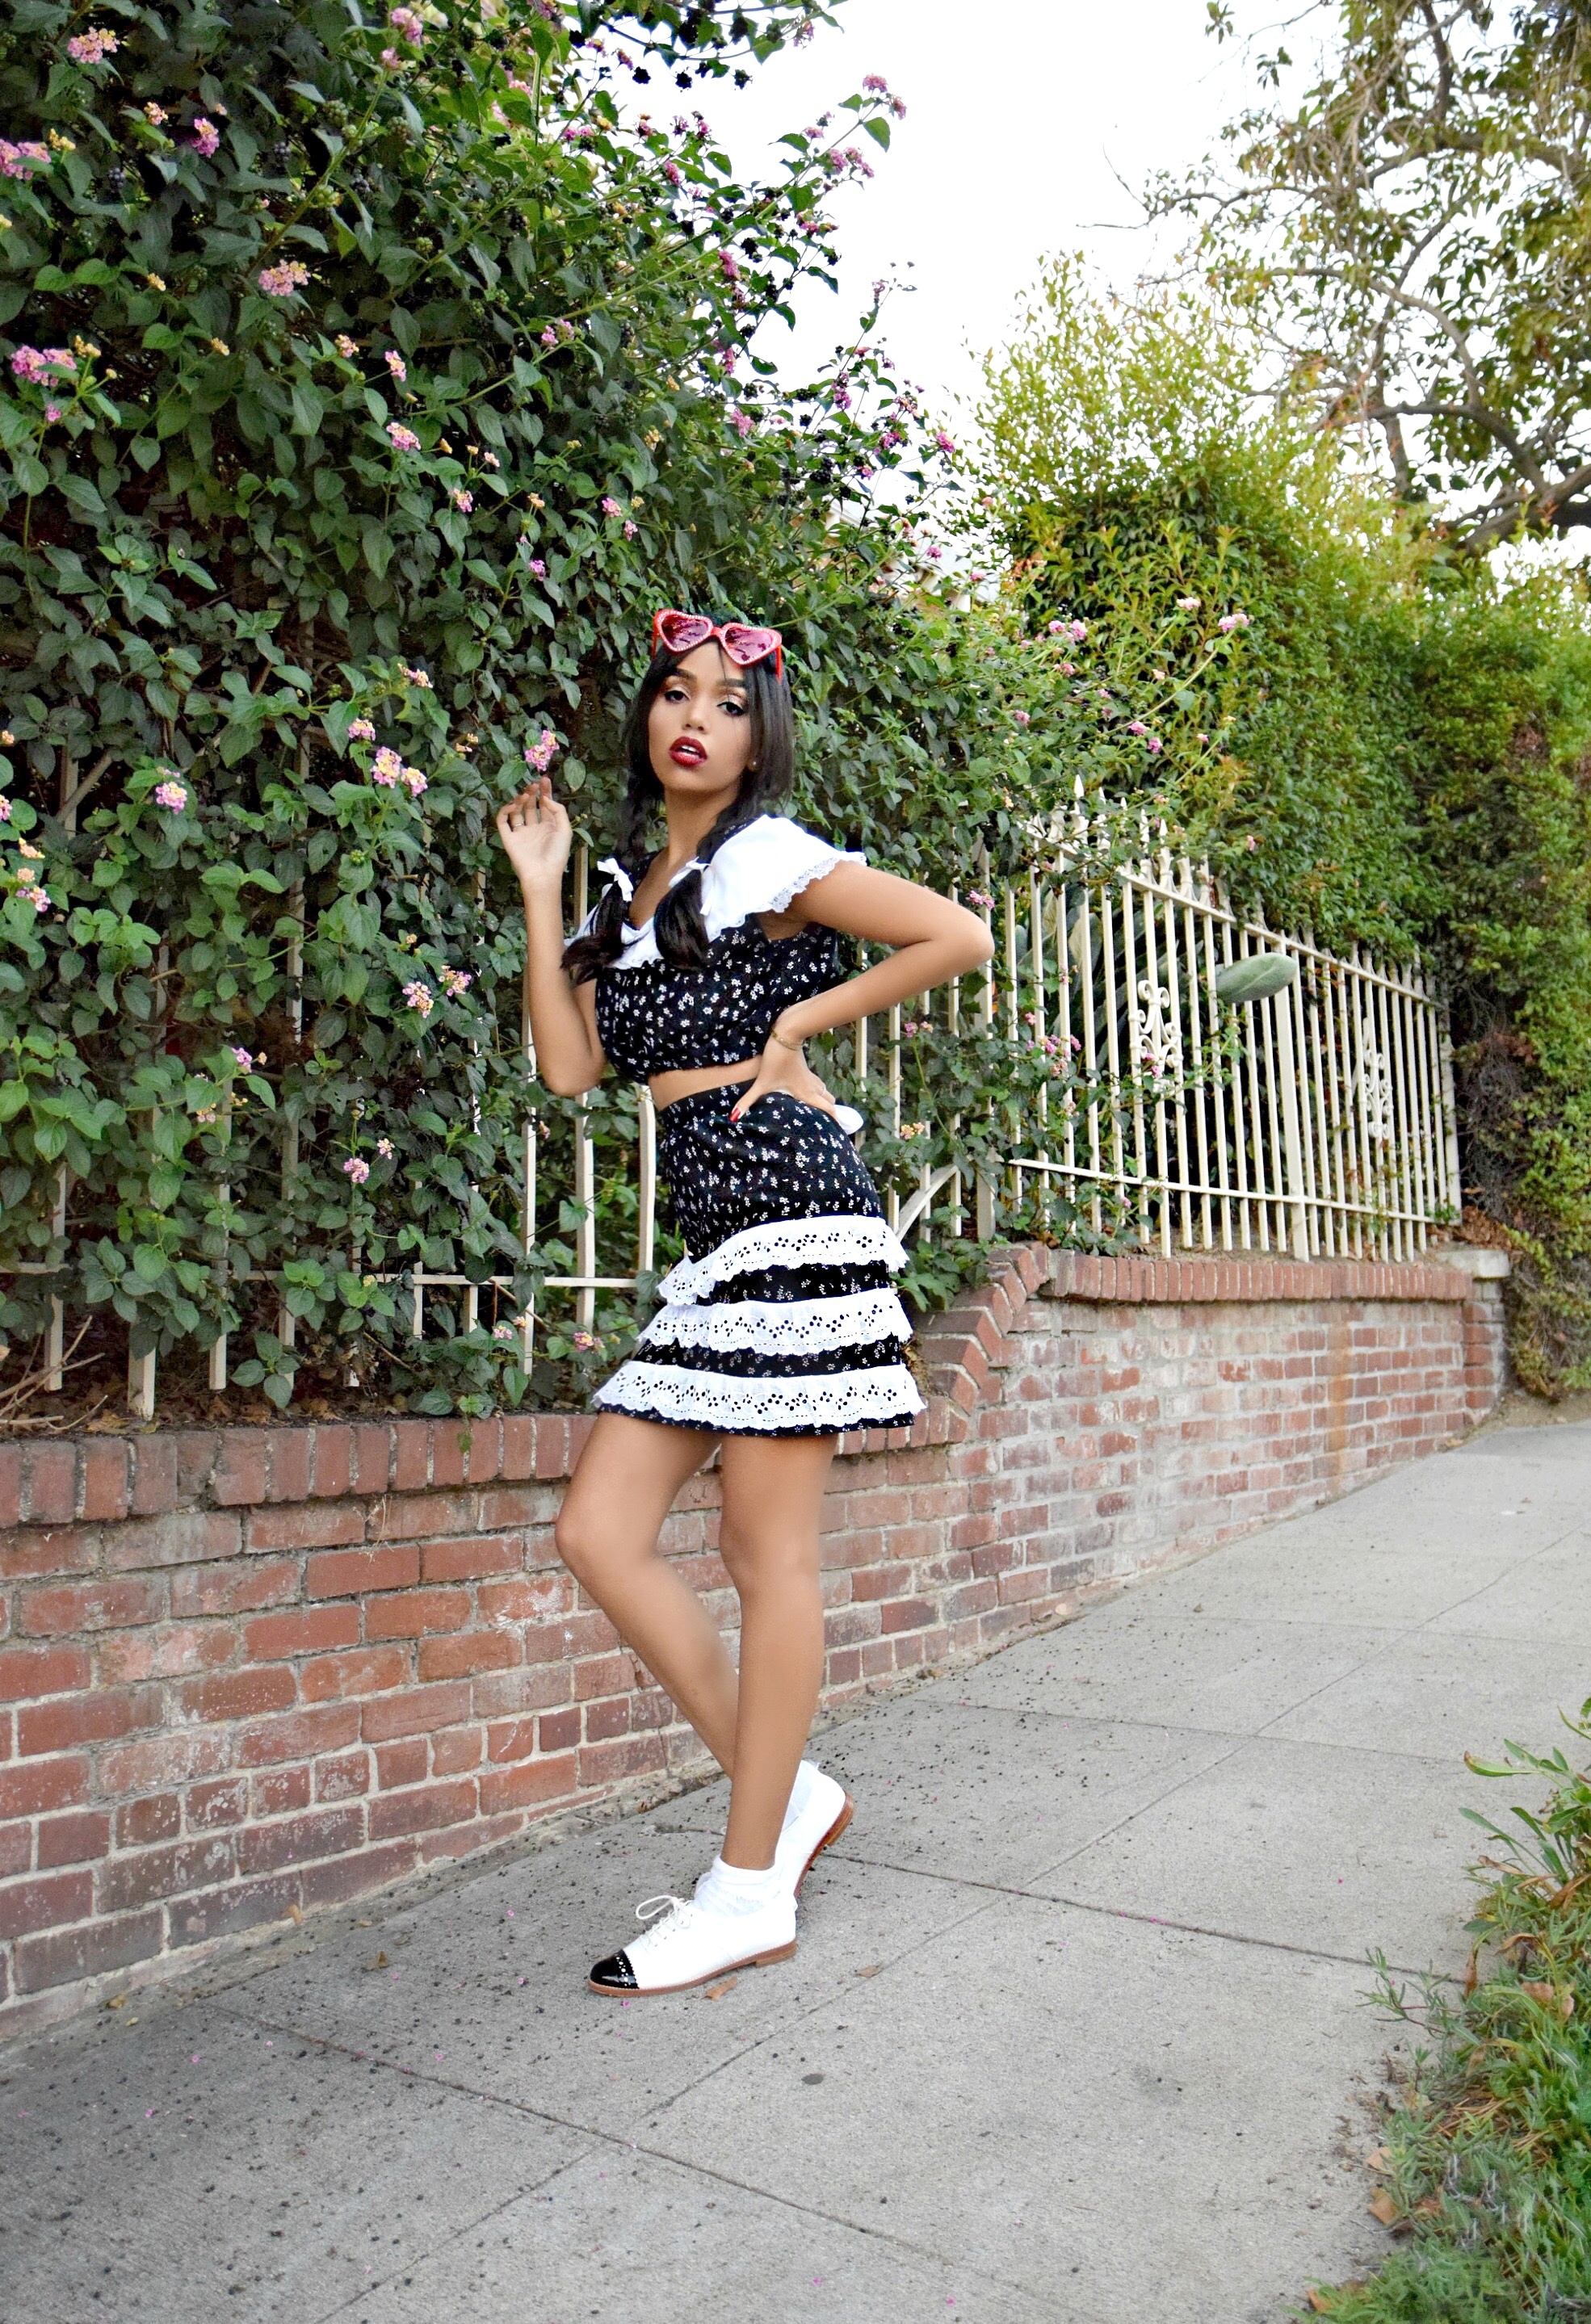 Hey Lolita Hey // Halloween 2016 // Lolita 1997 Film Inspired Halloween Costume + Look // Los Angeles Fashion Blogger Daphne Blunt: To Style, With Love